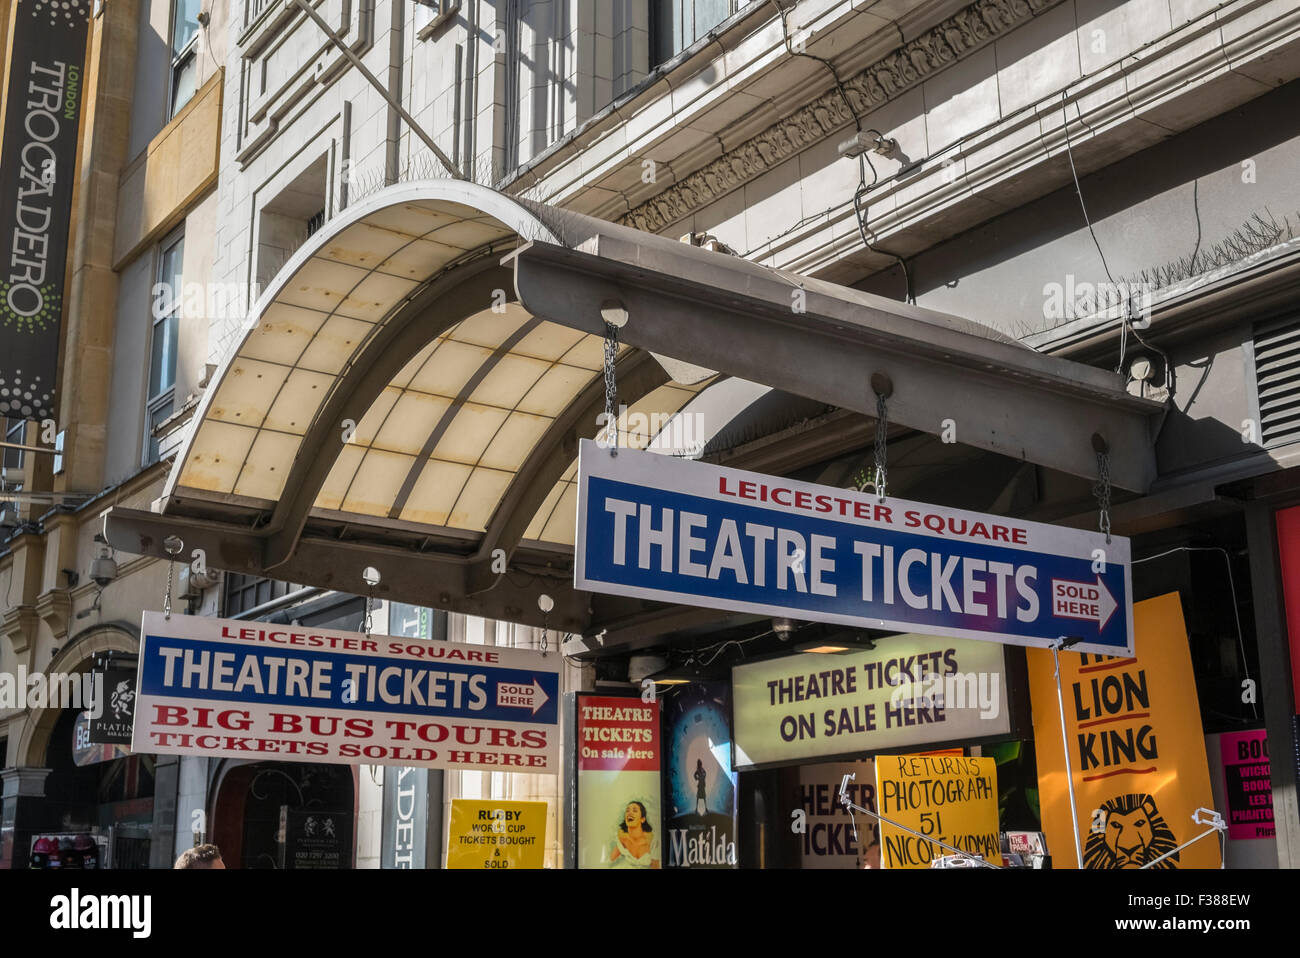 Theatre ticket office, Leicester Square, London, England UK - Stock Image